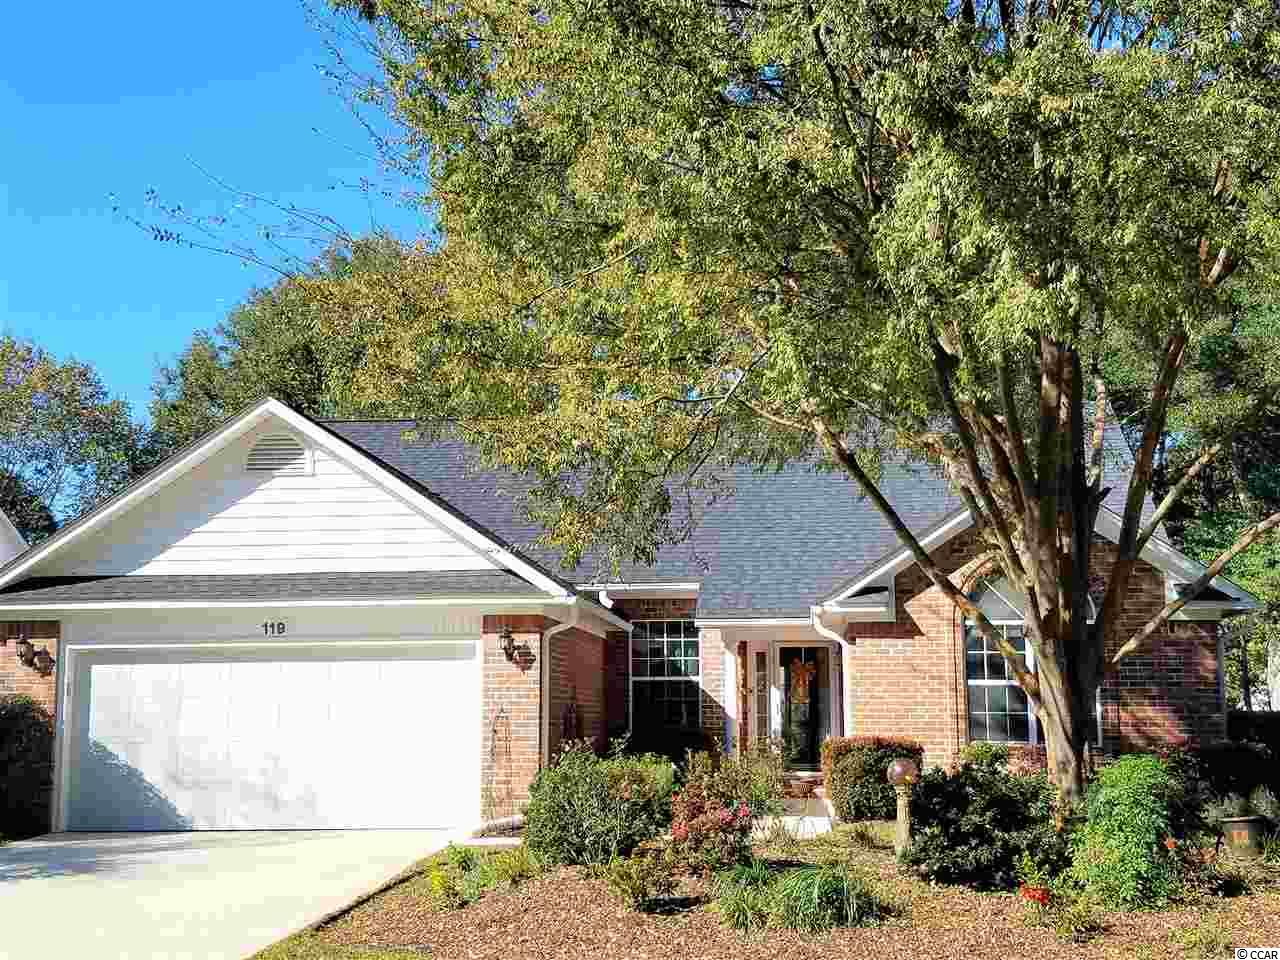 Welcome to one of the nicest, private communities in Pawley's Island. This home is located on the Top Notch River Club Golf Course. Sit on your back patio and enjoy the view of the 12th Hole and the lake beyond! This all brick, one owner home shows immense pride in ownership. Big, open floor plan with all tile floors in the LR/DR/KIT that keep the house cooler in Summer and are perfect for beach living. Important updates are a new roof in 2015 and 15 Seer Trane complete HVAC system. Rest easy as this home is not in the Flood Zone! The River Club is gated for your safety and privacy. It has a beautiful private pool and of course the golf course and clubhouse are right at your fingertips. Don't forget as owners in The River Club you have access to the Oceanfront Amenities at Litchfield by the Sea. This means easy beach parking in the Summer with access to the sun decks, clubhouse, outdoor showers and bathrooms. Homes like this sell quickly in The River Club so come take a look. If you wait it might be gone!